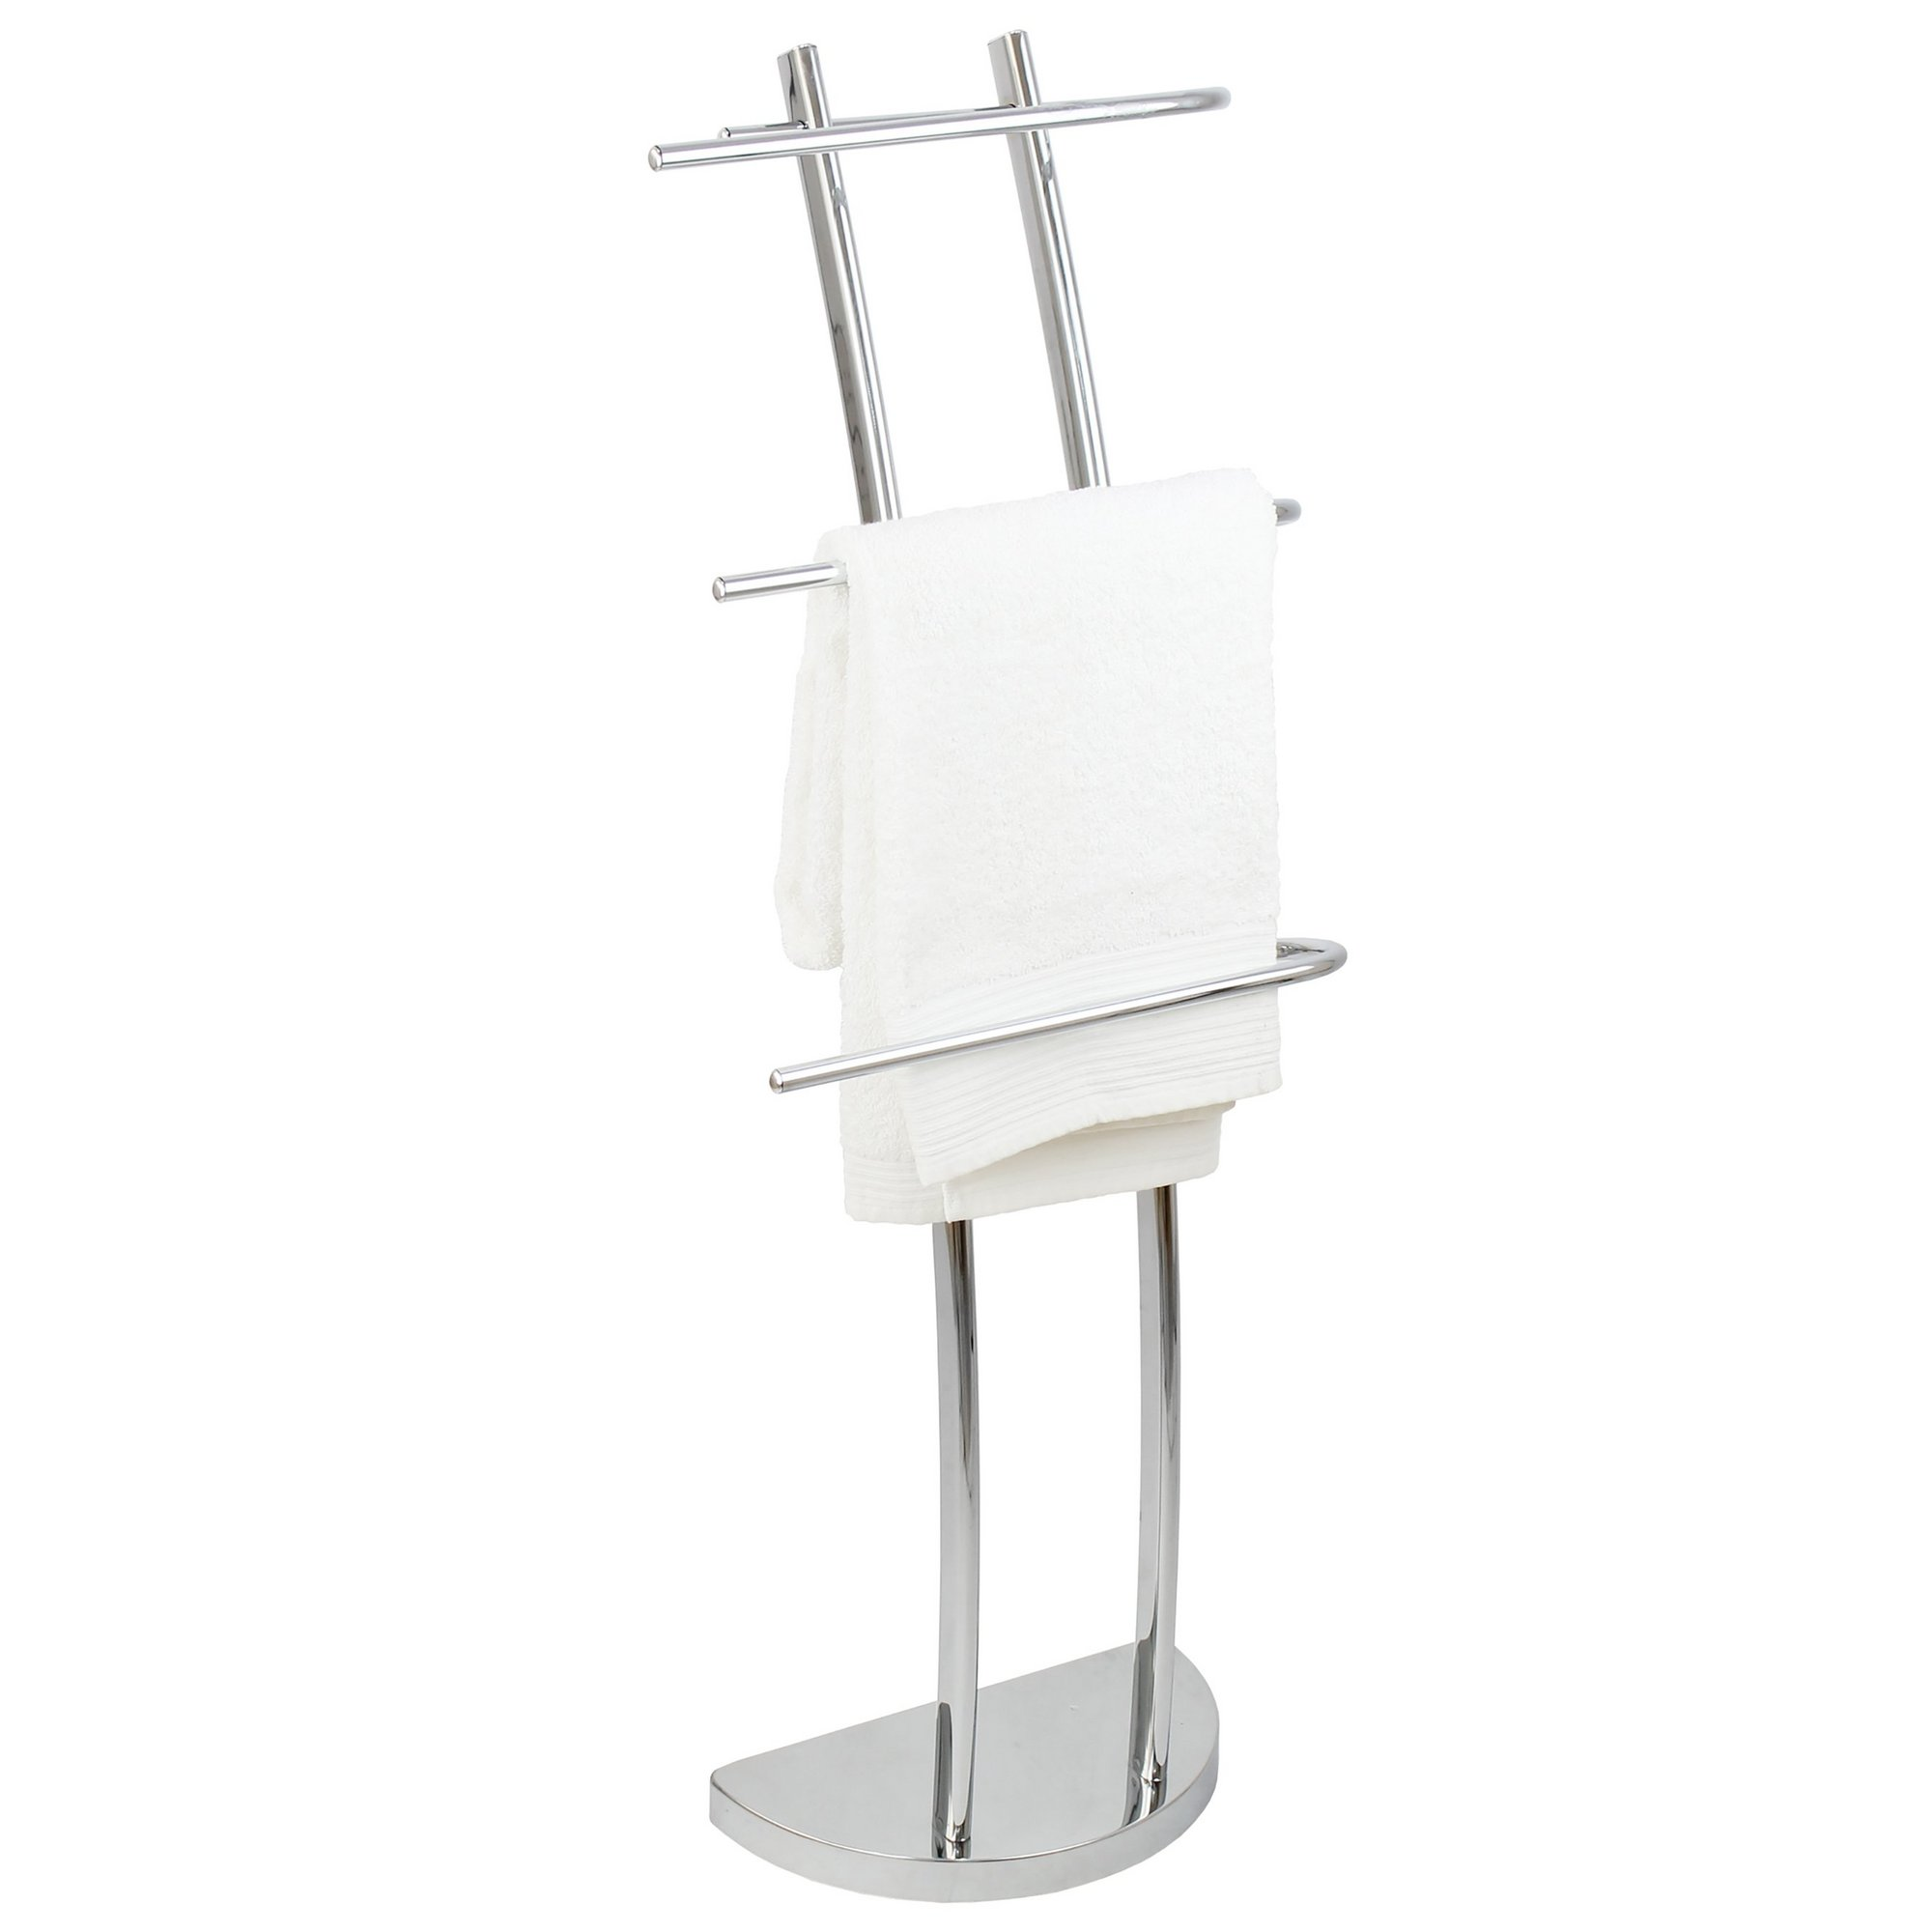 Image of Lloyd Pascal Chrome 3 Arm Arched Towel Stand